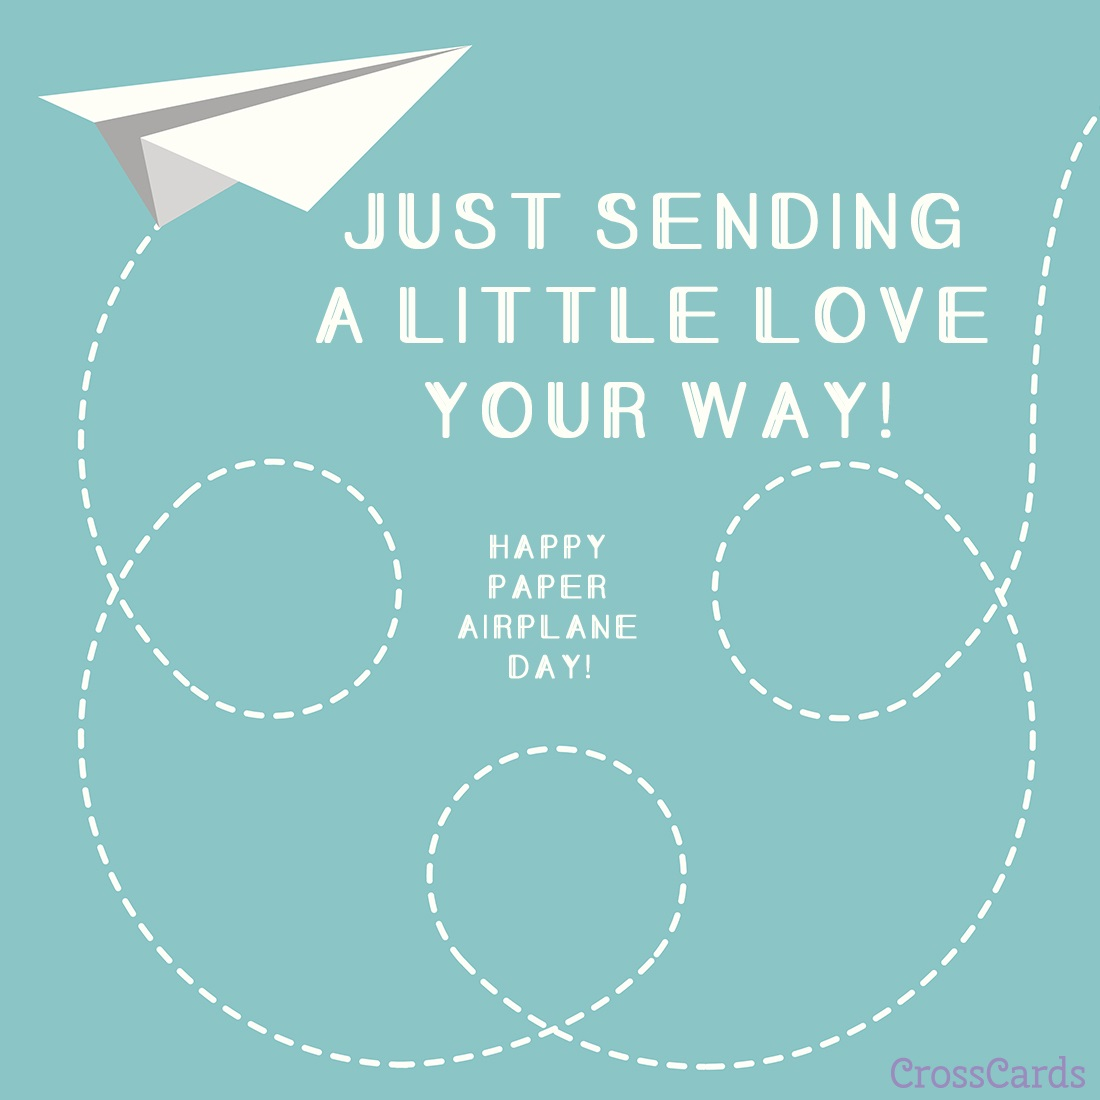 Happy Paper Airplane Day! (5/26) ecard, online card